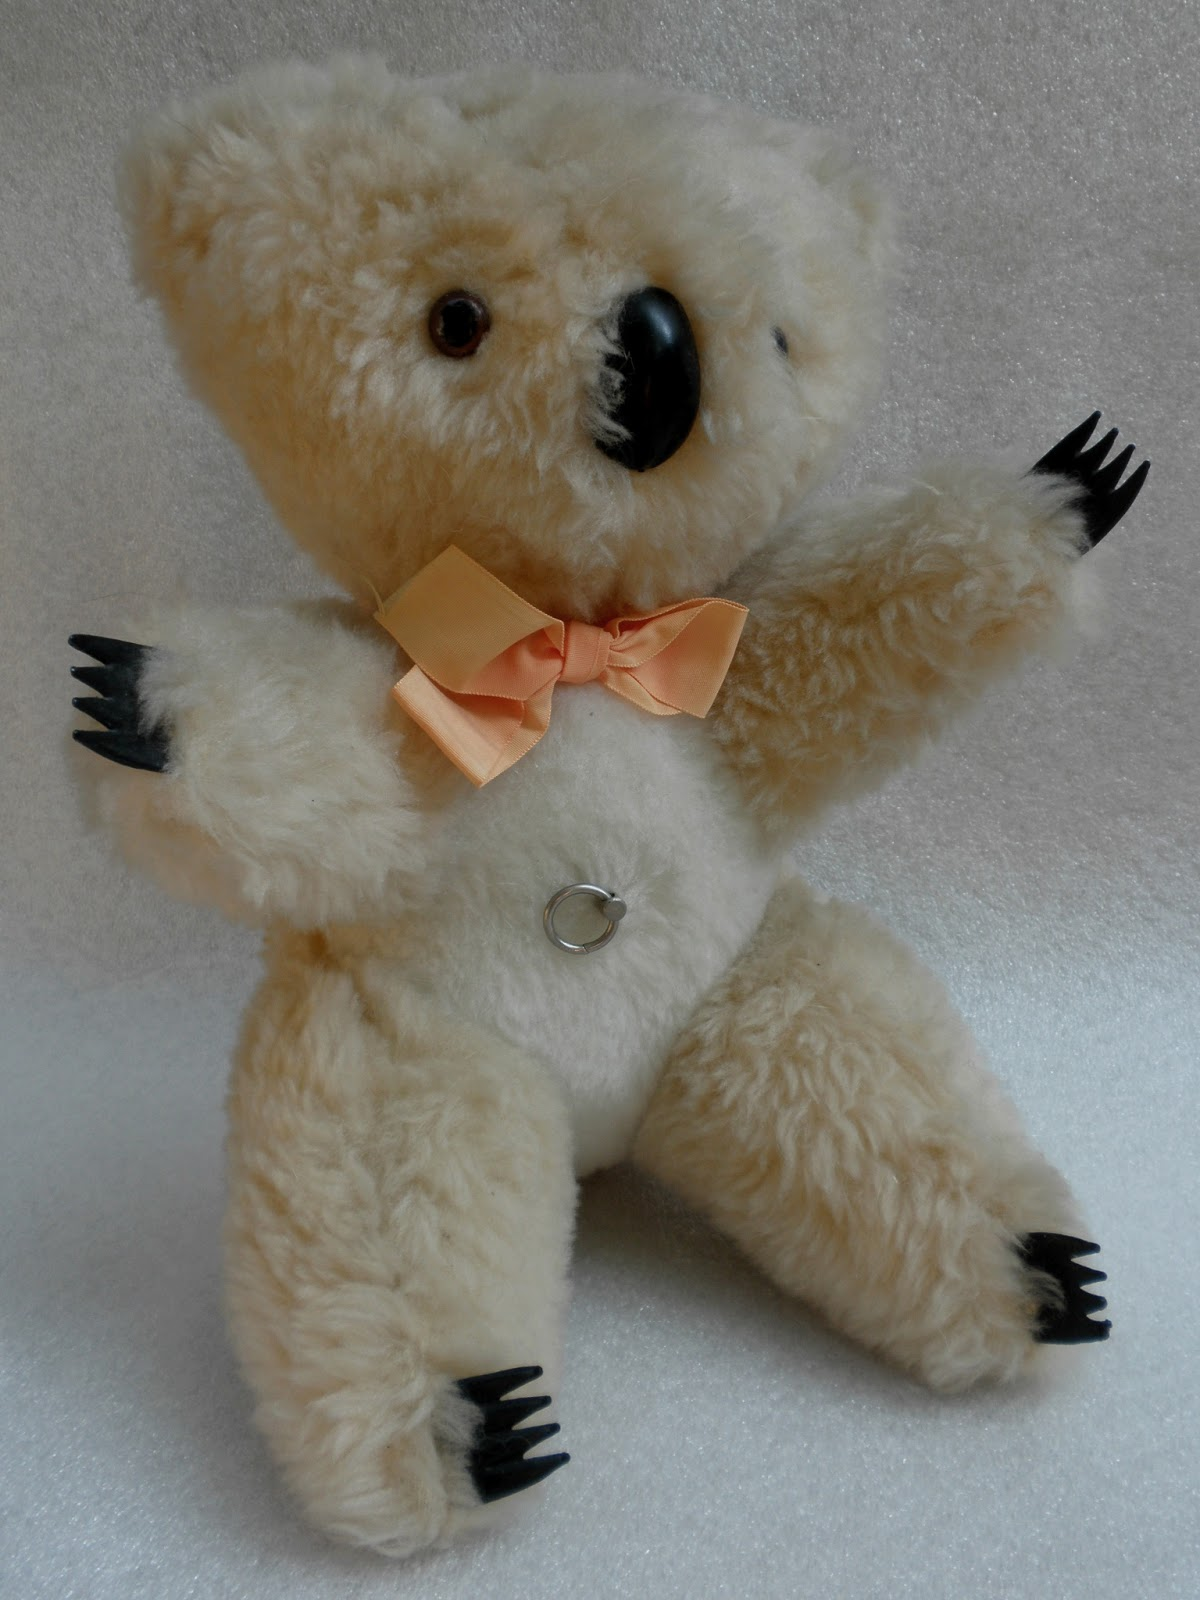 Australian Made Teddy Bears Collectible Teddy Bears How To Determine If Your Find Is